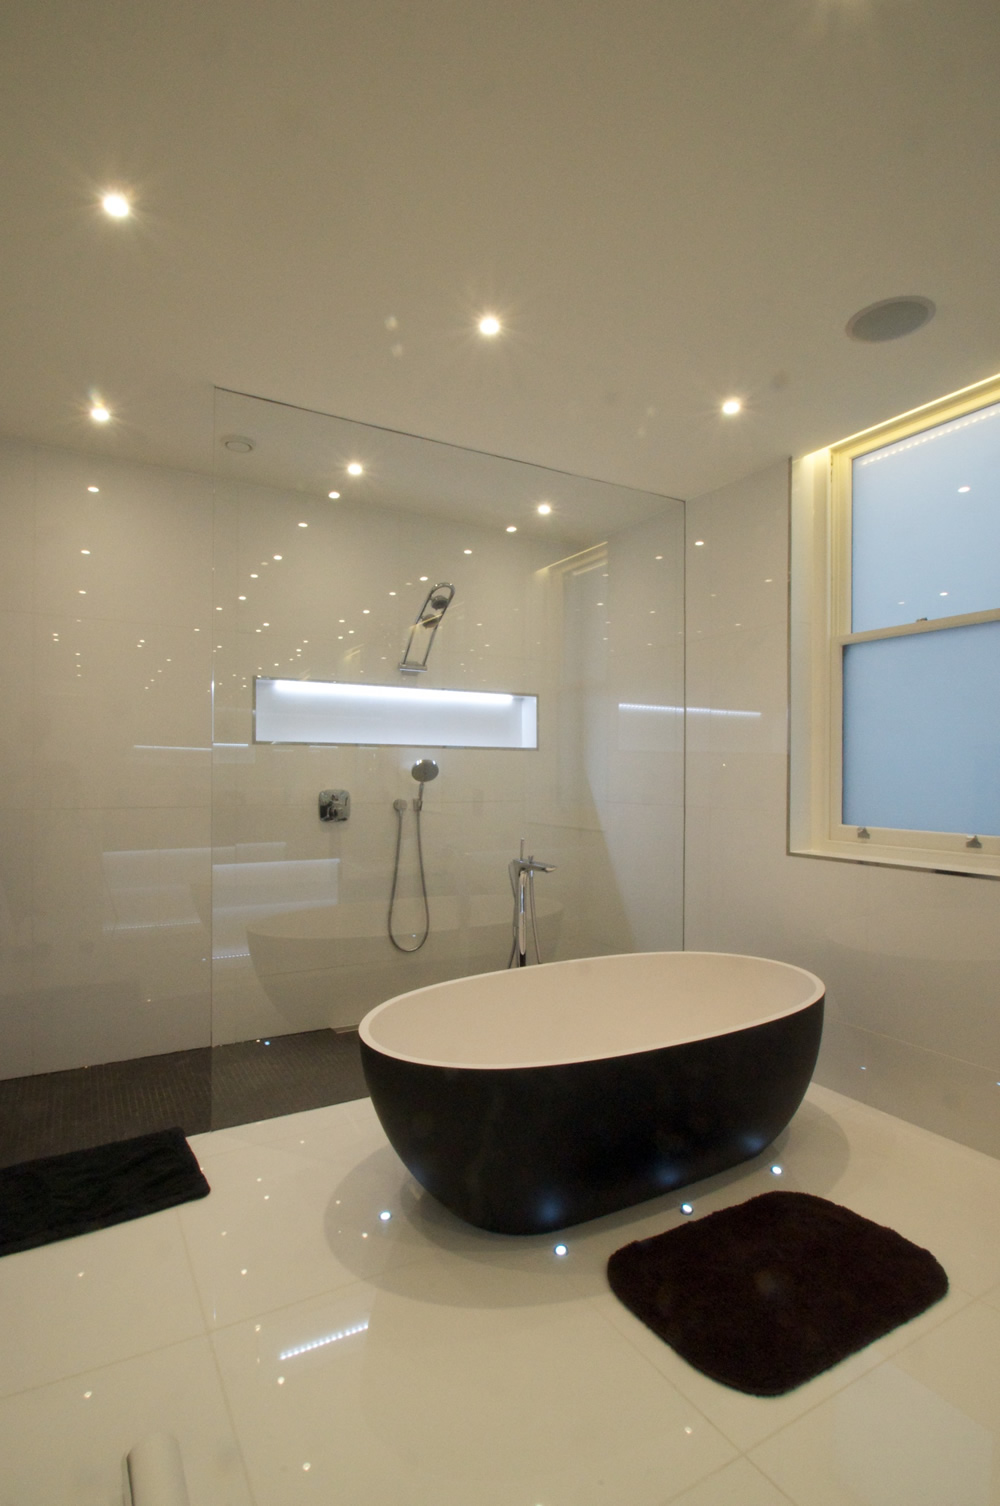 Wet room design gallery Bathroom design shower over bath